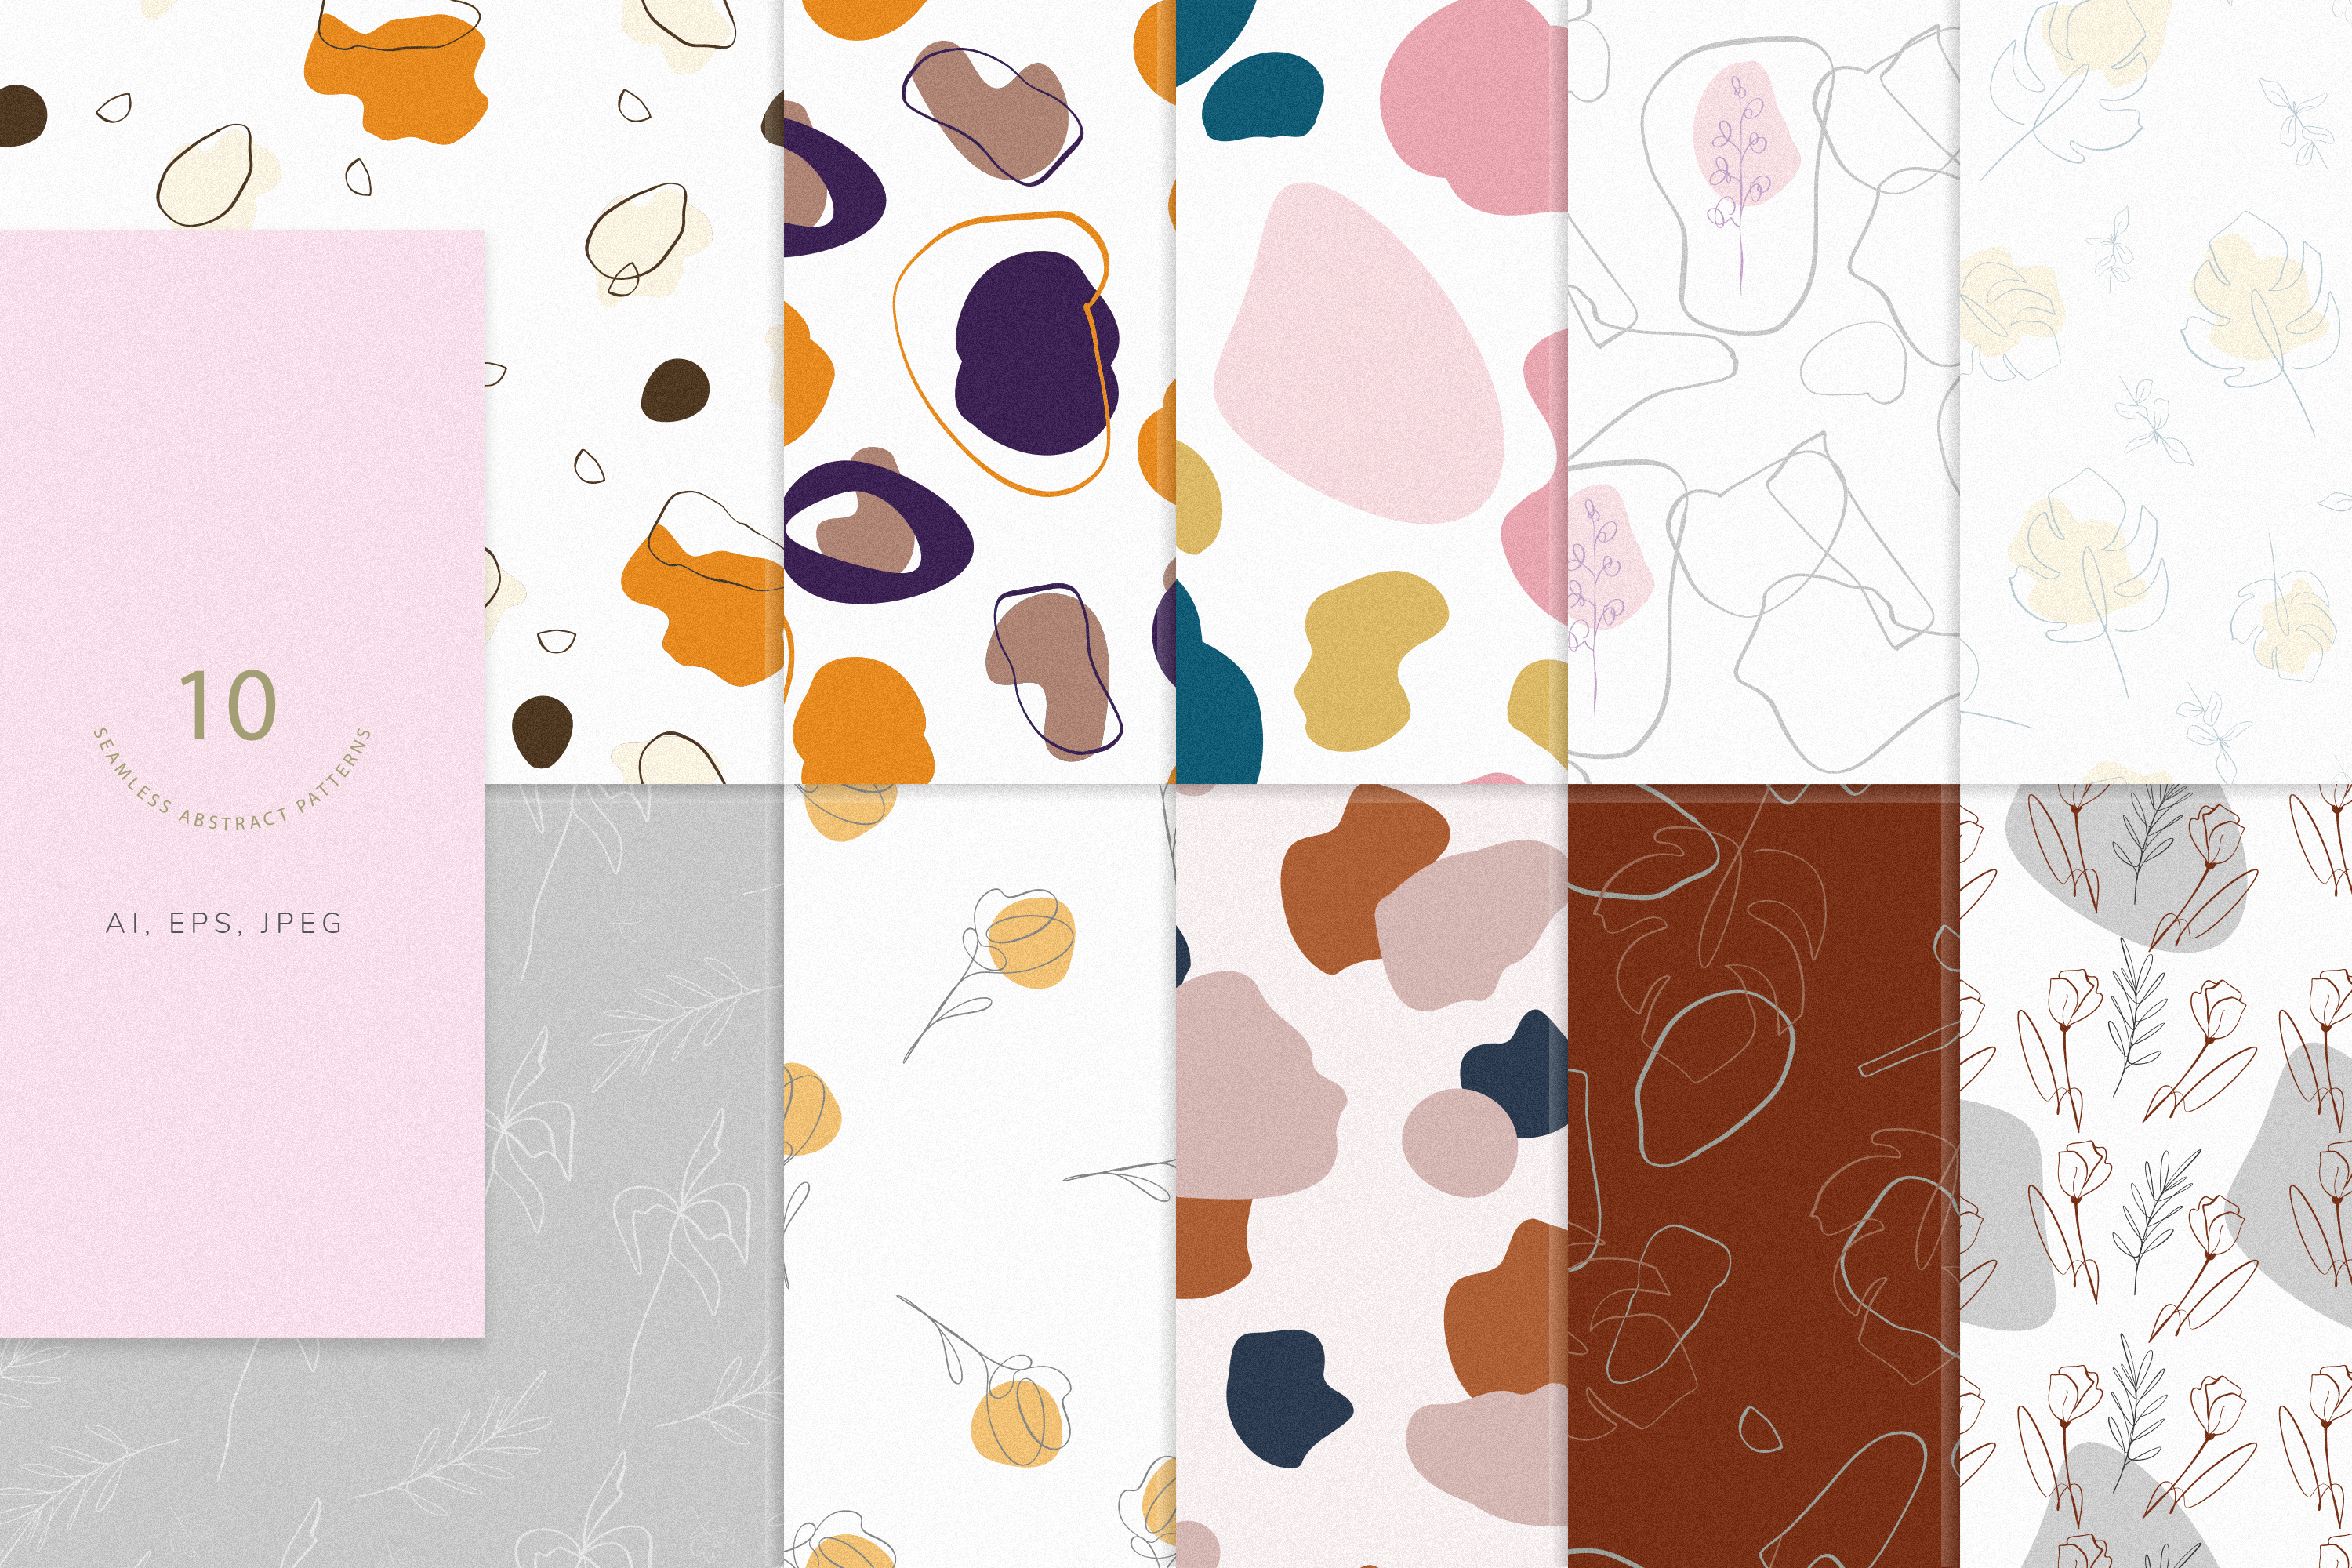 Abstract elements 10 seamless patterns  example image 1